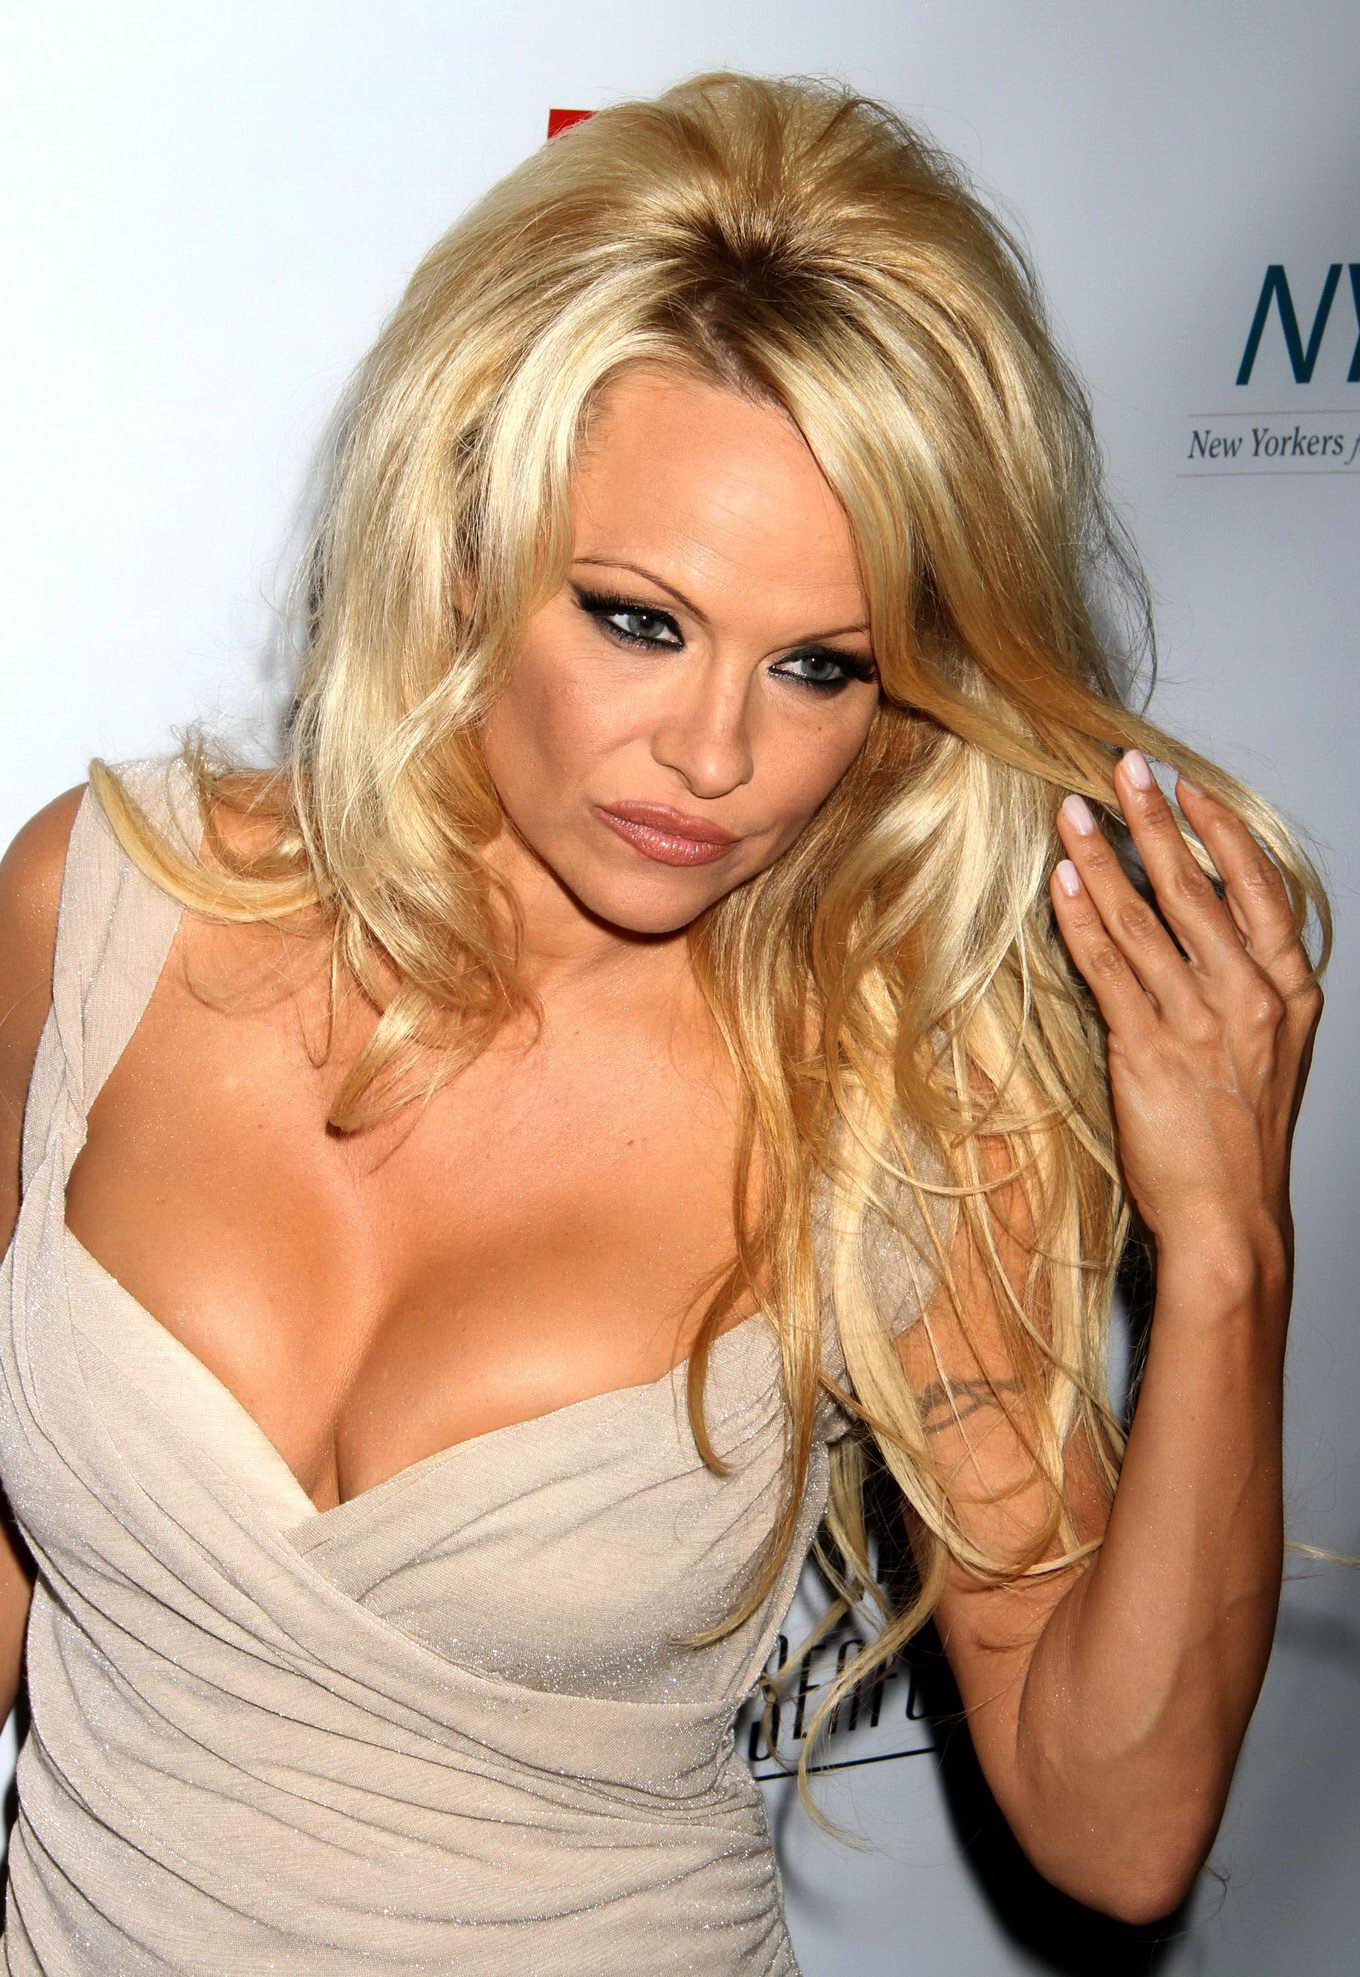 Pamela Anderson Showing Huge Cleavage At A Night Of New -9202